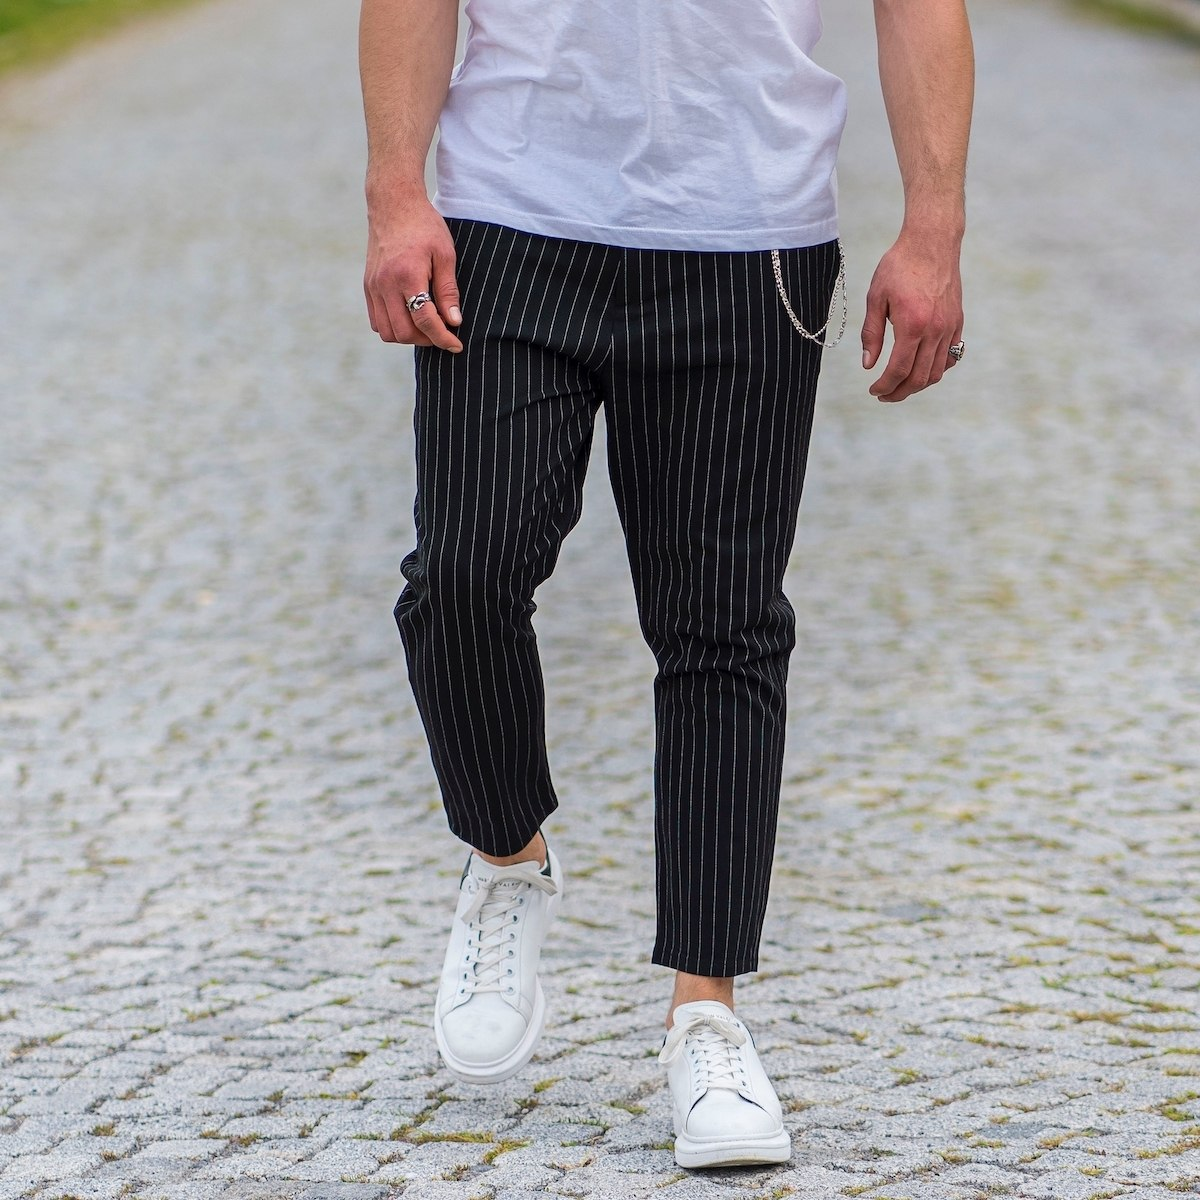 Stone Black Trousers With White Stripes and Chain